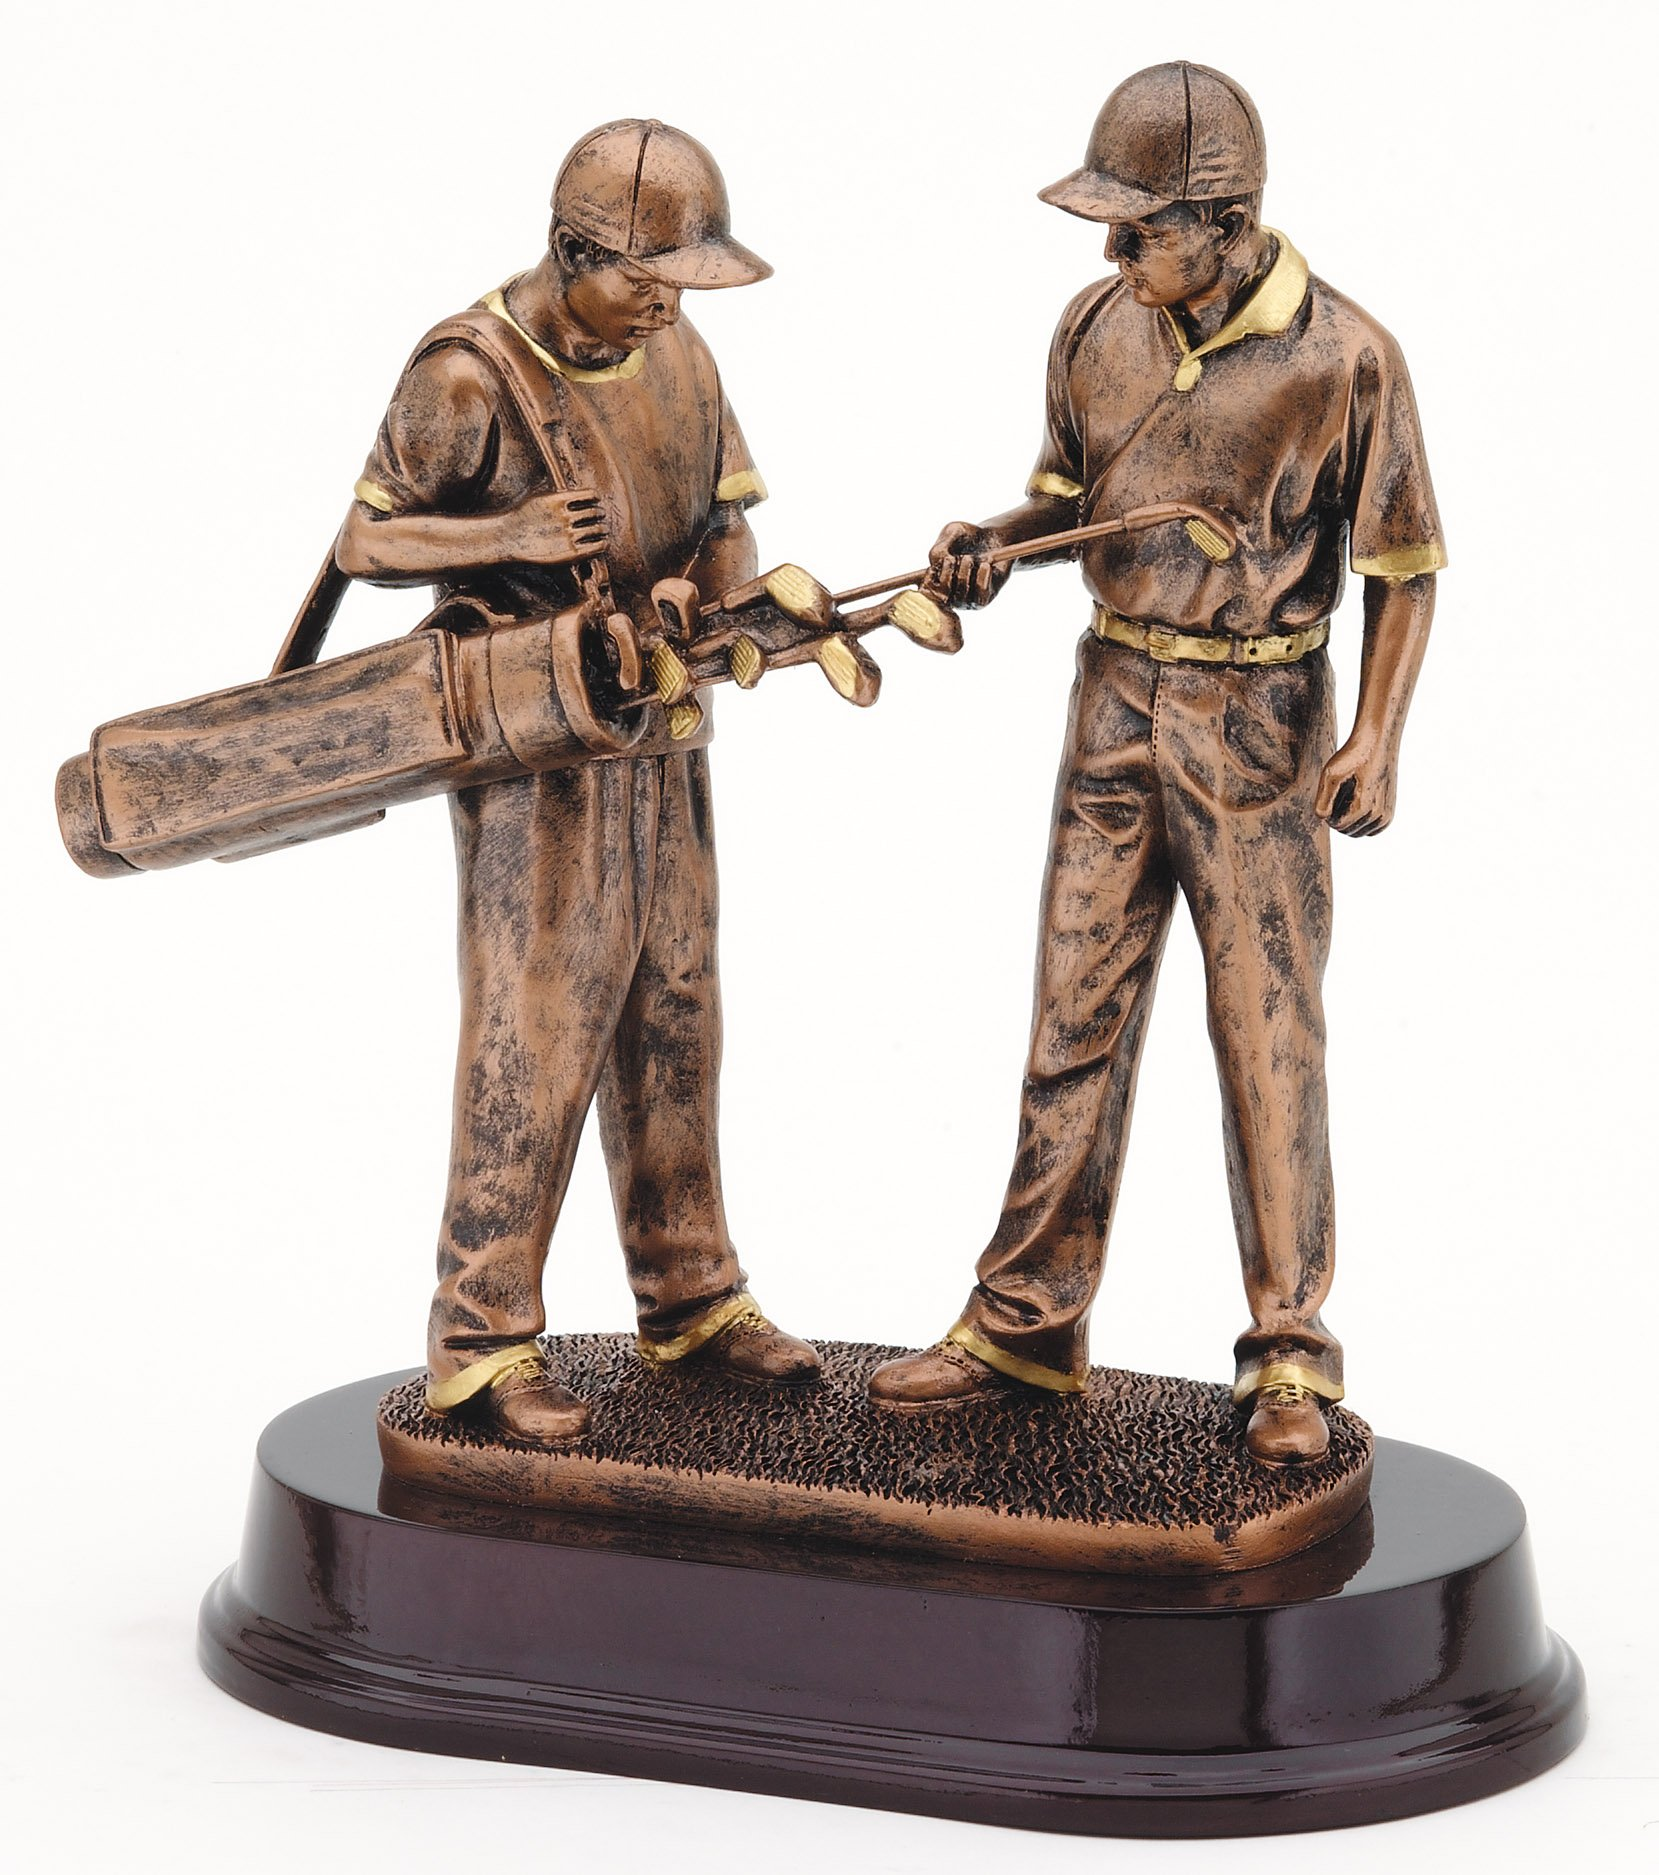 Golfer and Caddy Bronze Resin Trophy Award - 9.5